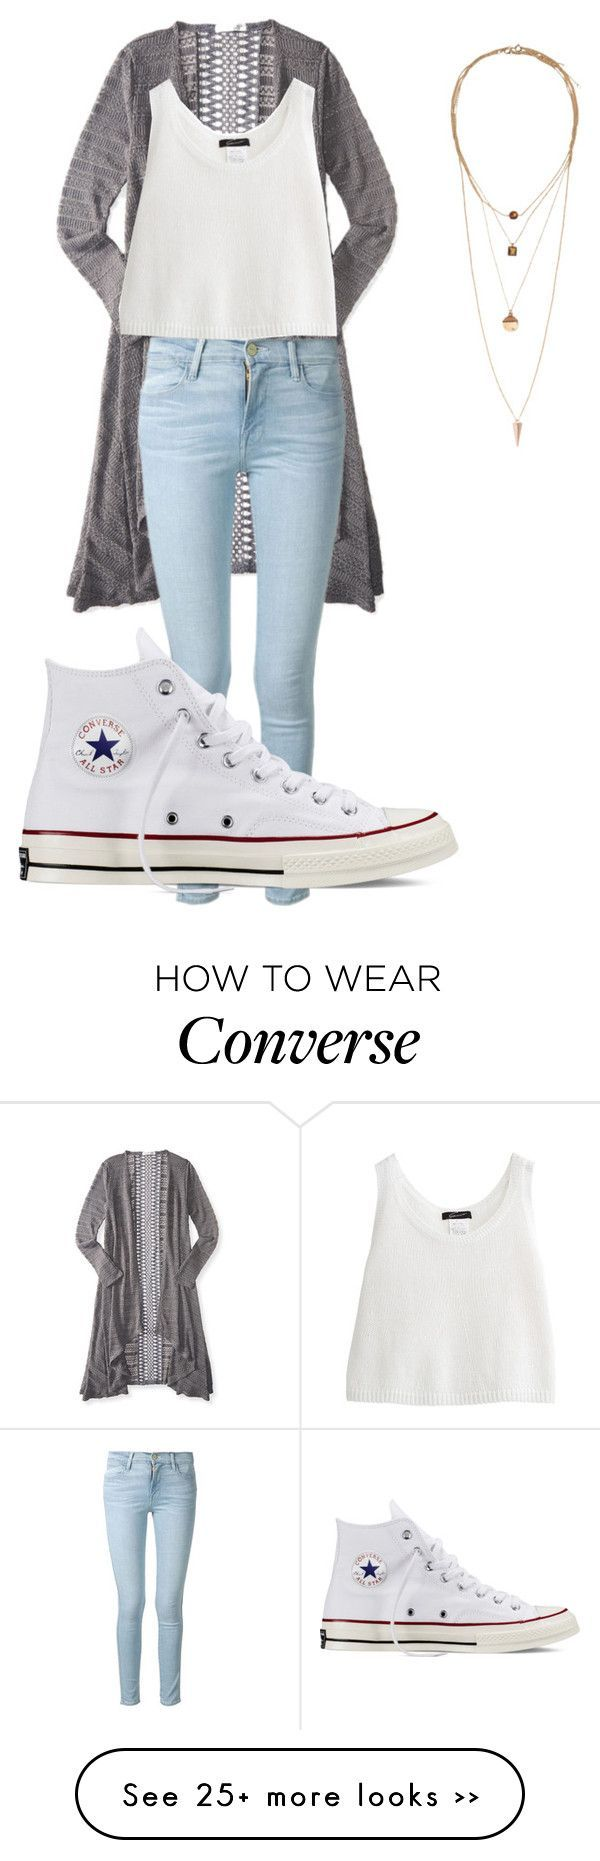 """Untitled #853"" by natalia-bravo-echevarria on Polyvore"